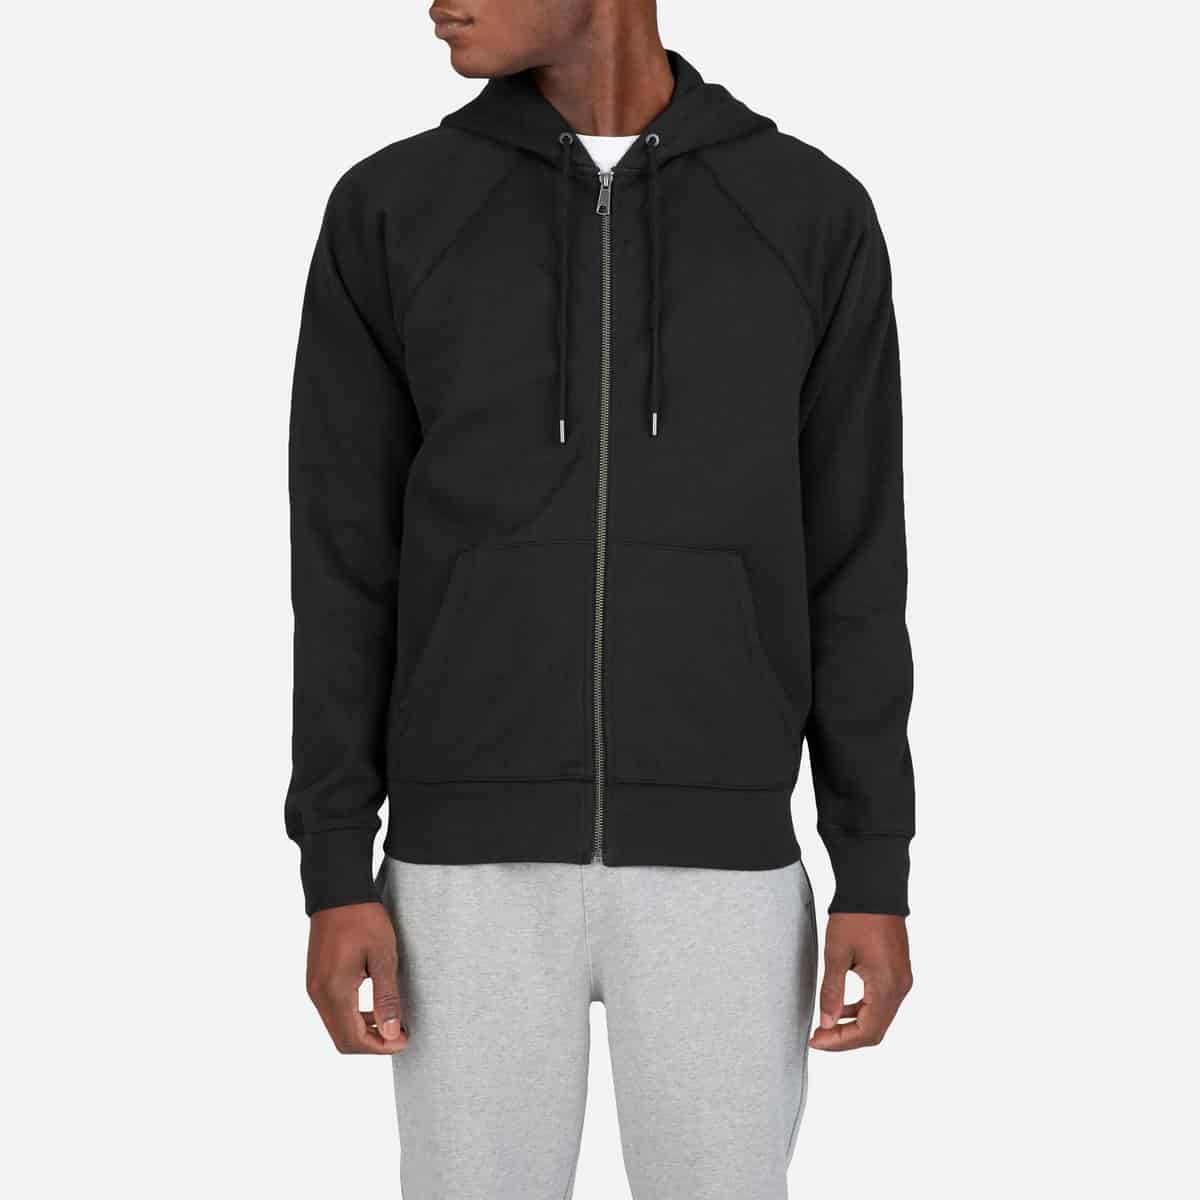 6dd5164a5 The Most Comfortable Men's Hoodies | Comfort Nerd